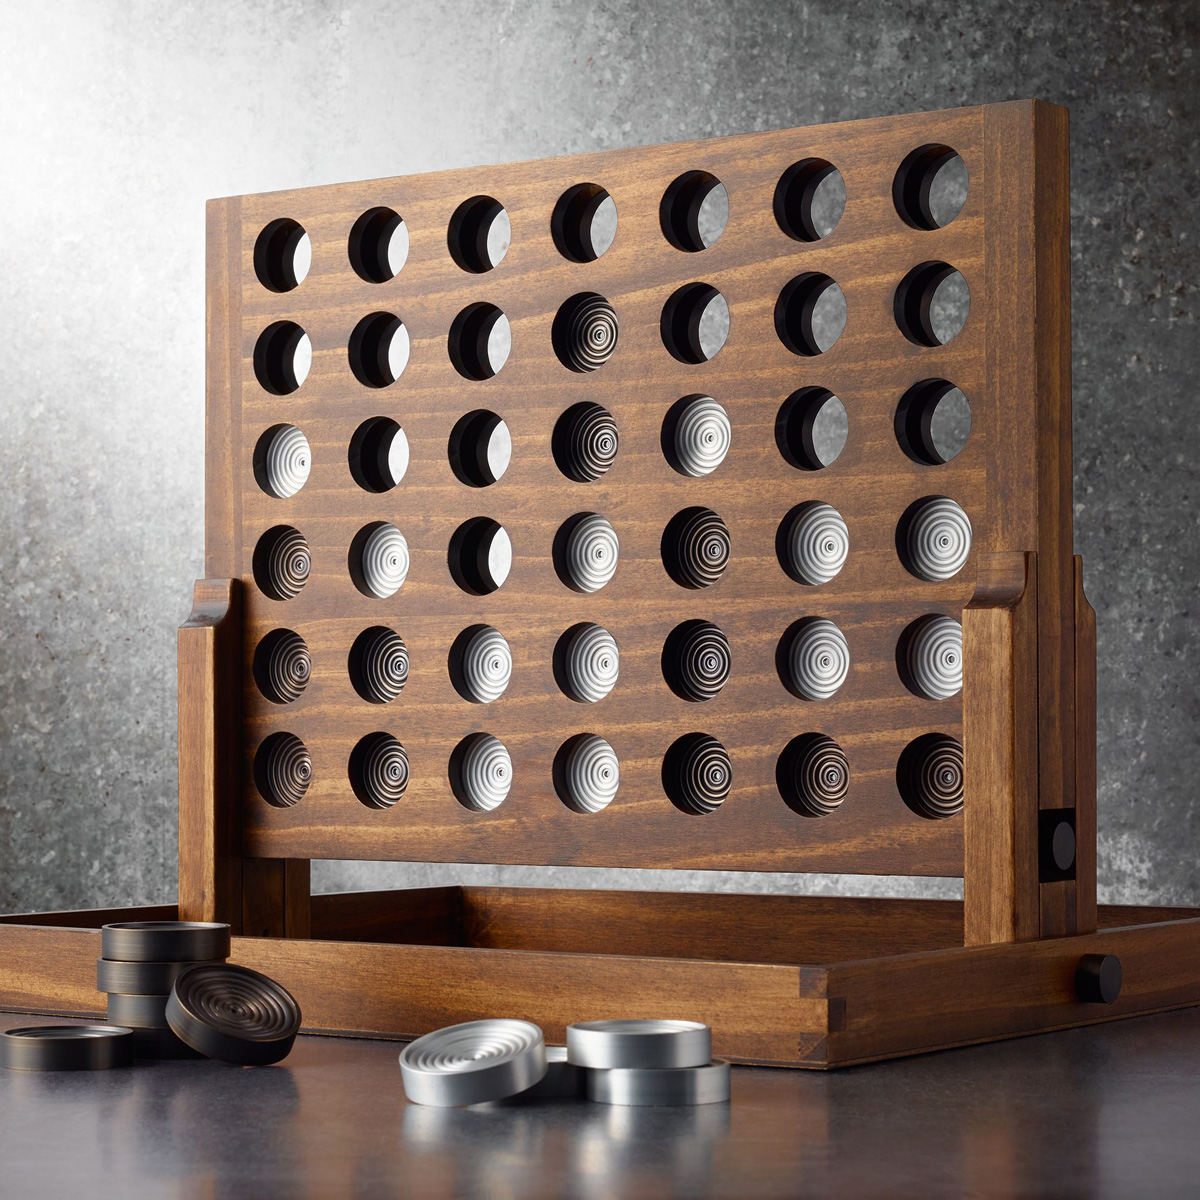 Wood And Aluminum Connect Four Game The Green Head